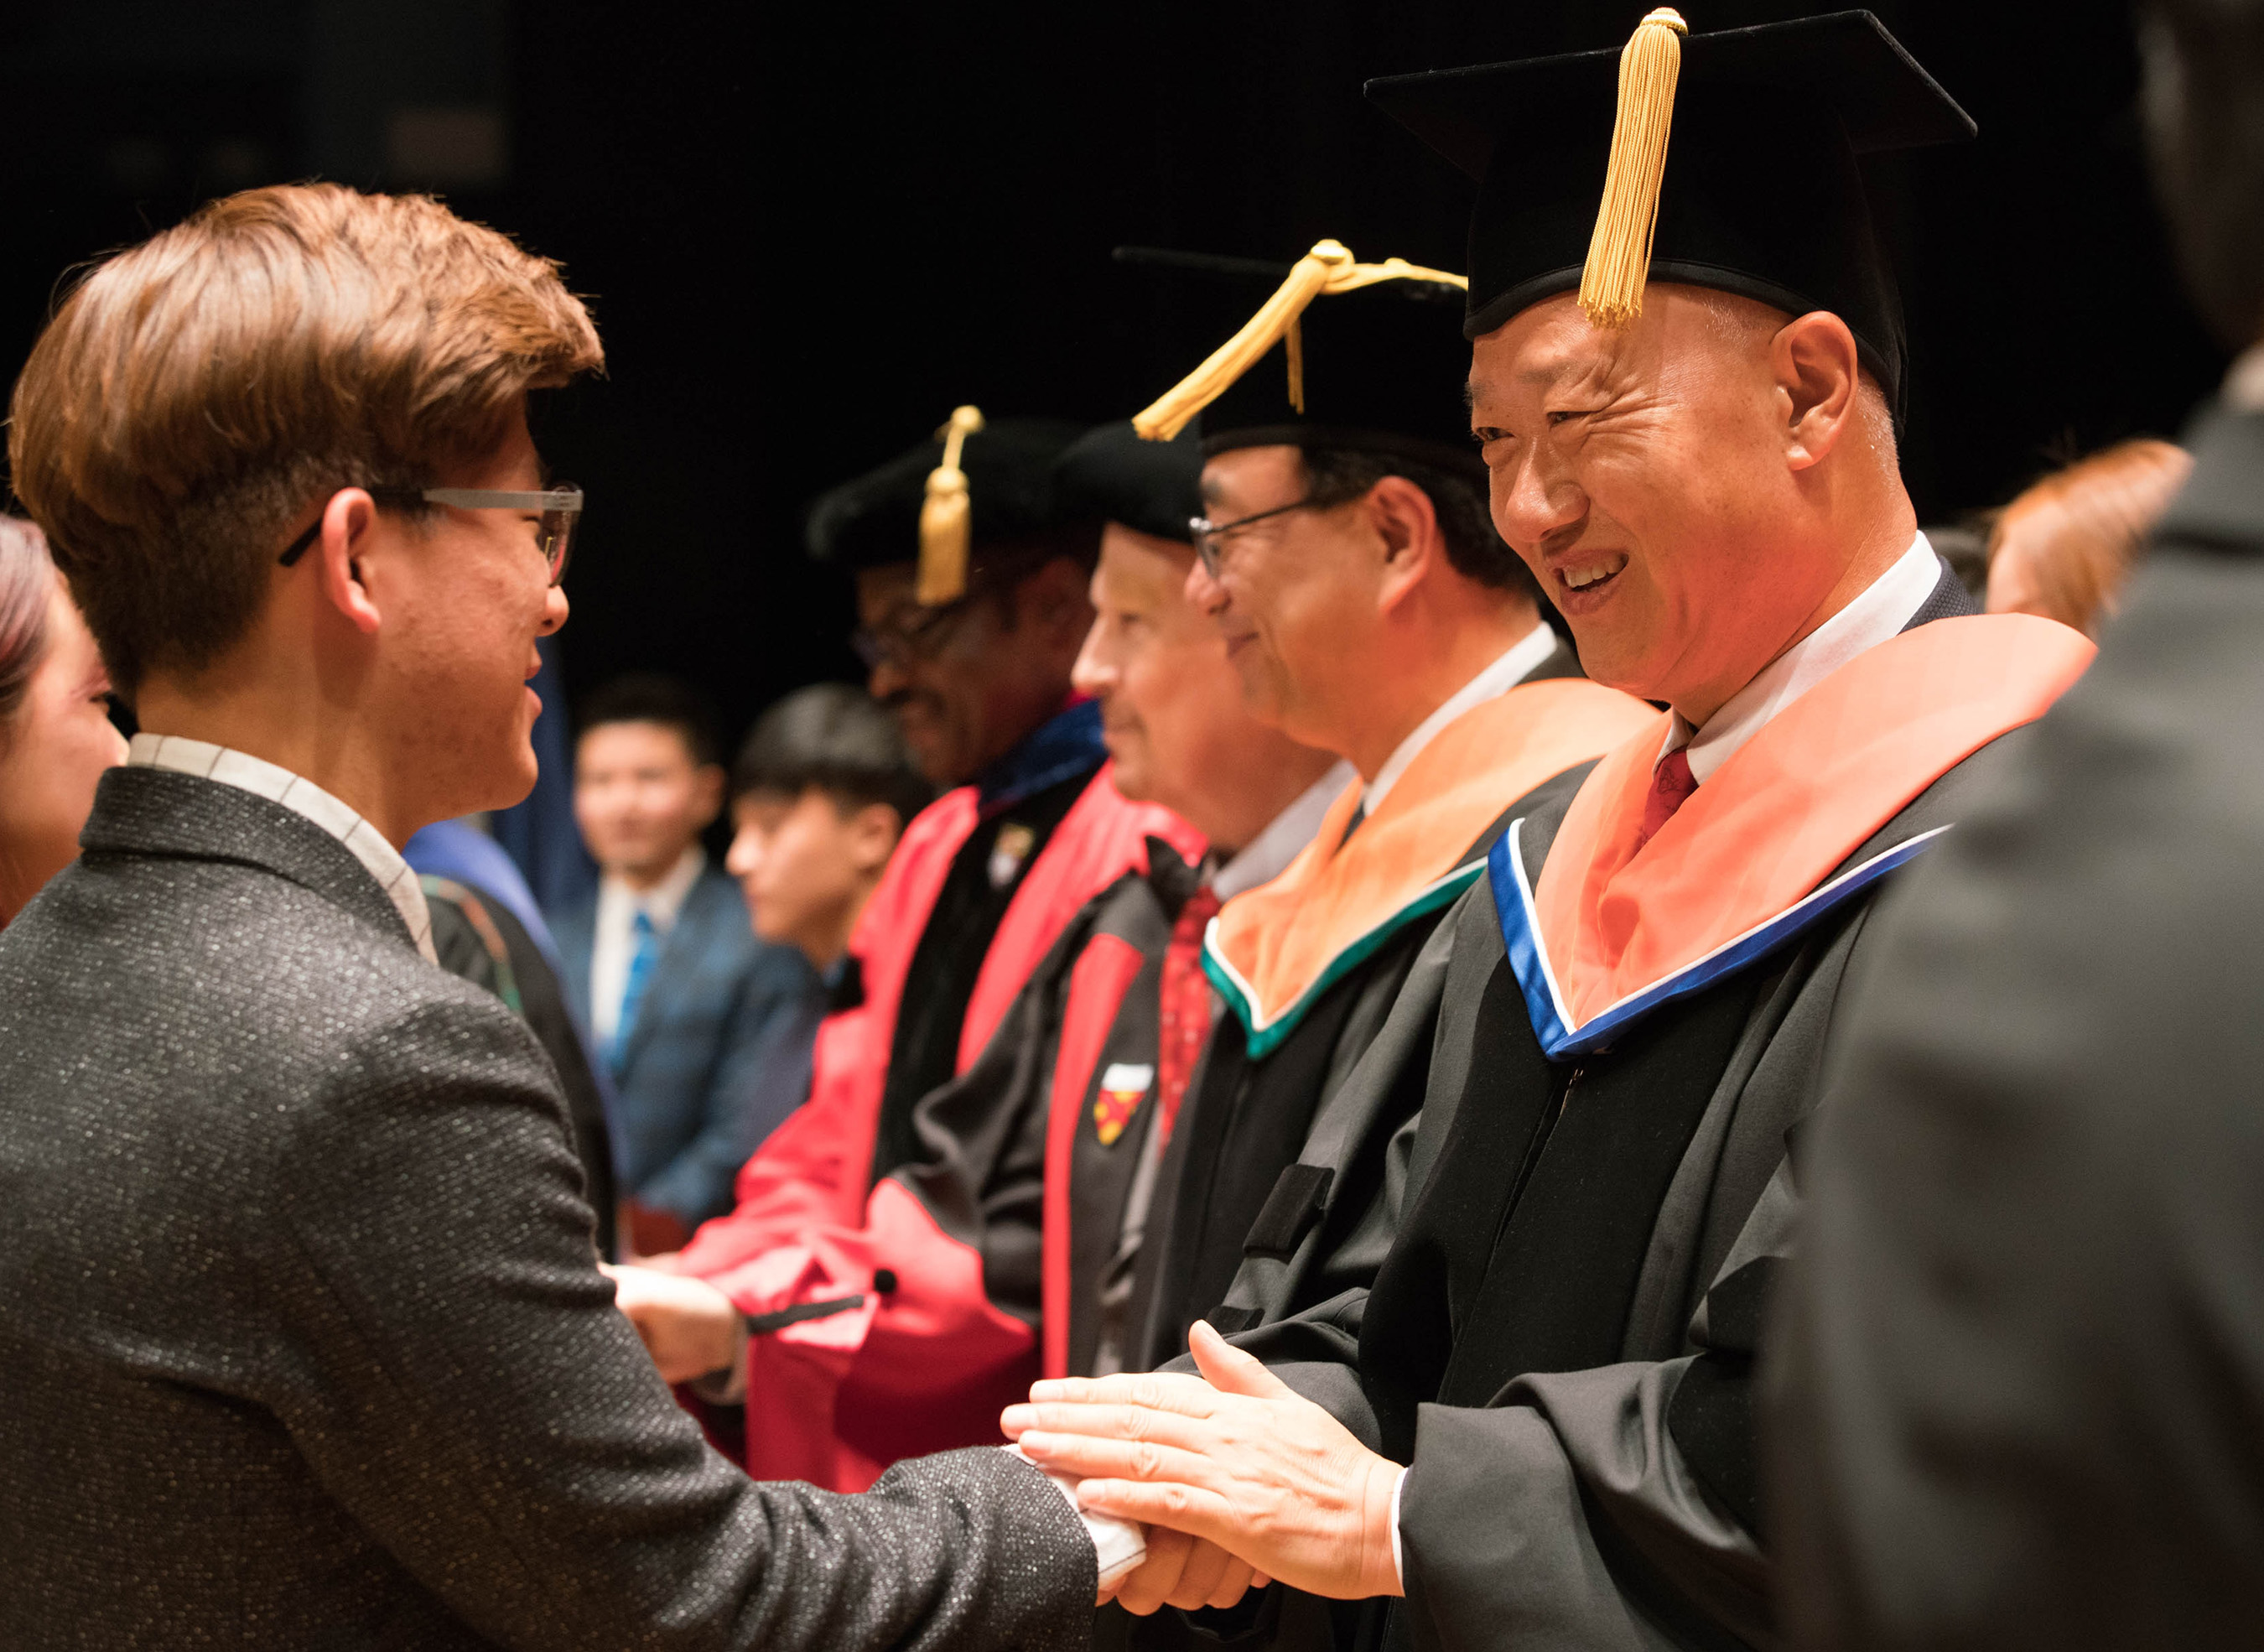 Commencement ceremony of SUNY Korea in January, 2017